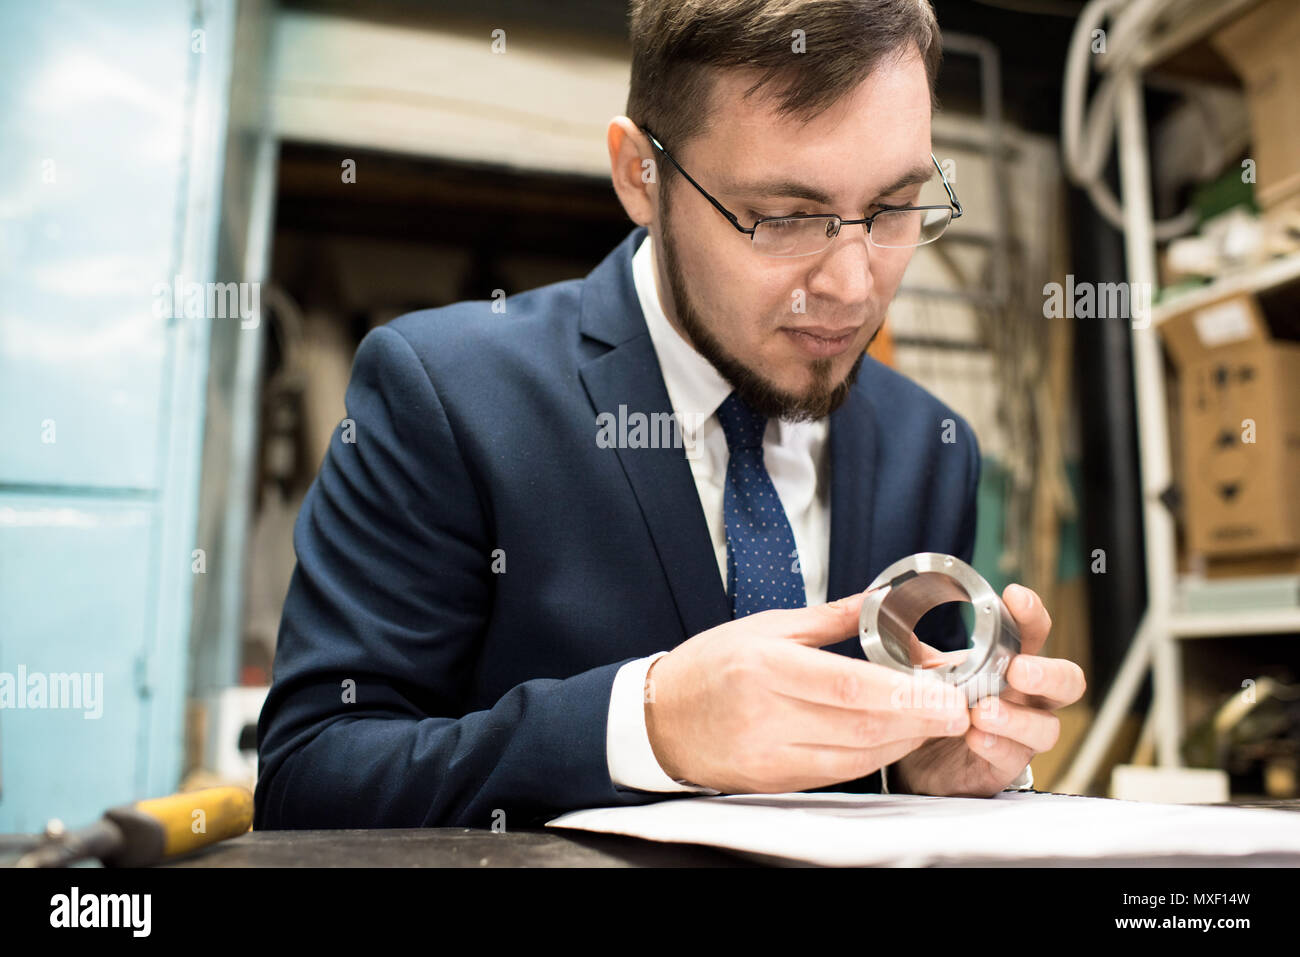 Carrying out Quality Control at Modern Plant - Stock Image